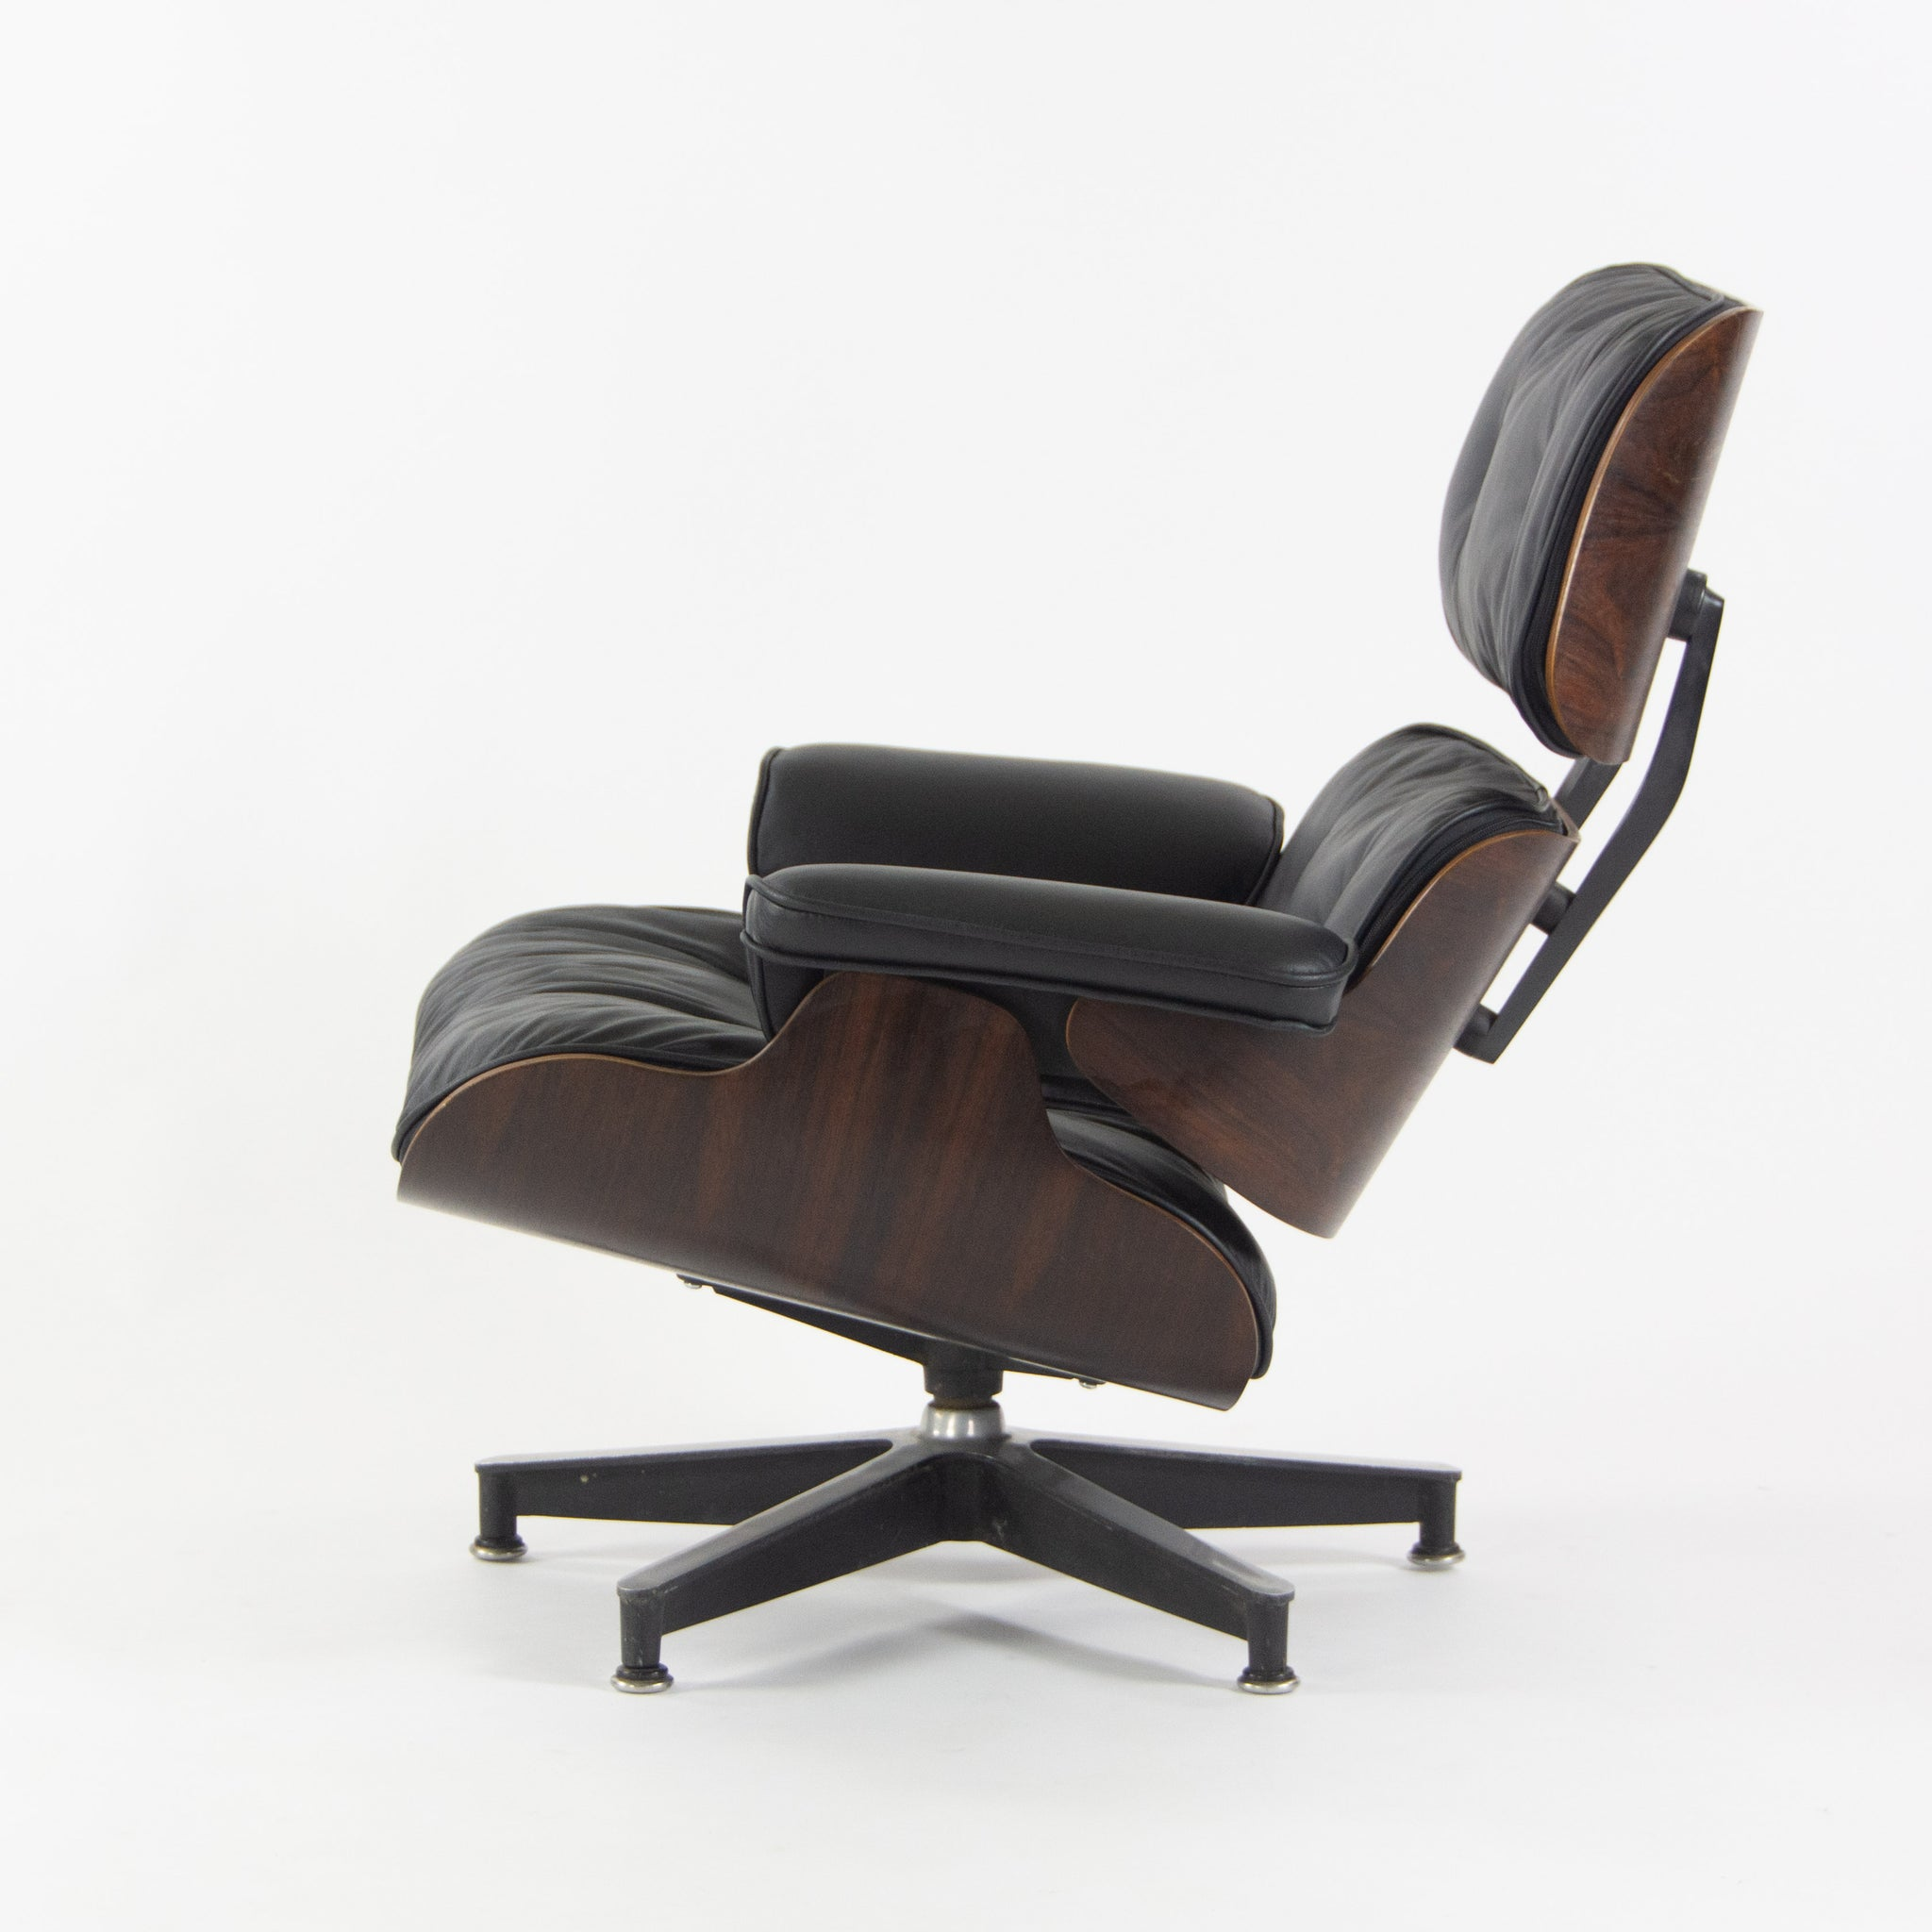 SOLD 1960s Herman Miller Eames Lounge Chair and Ottoman Rosewood 670 671 New Cushions